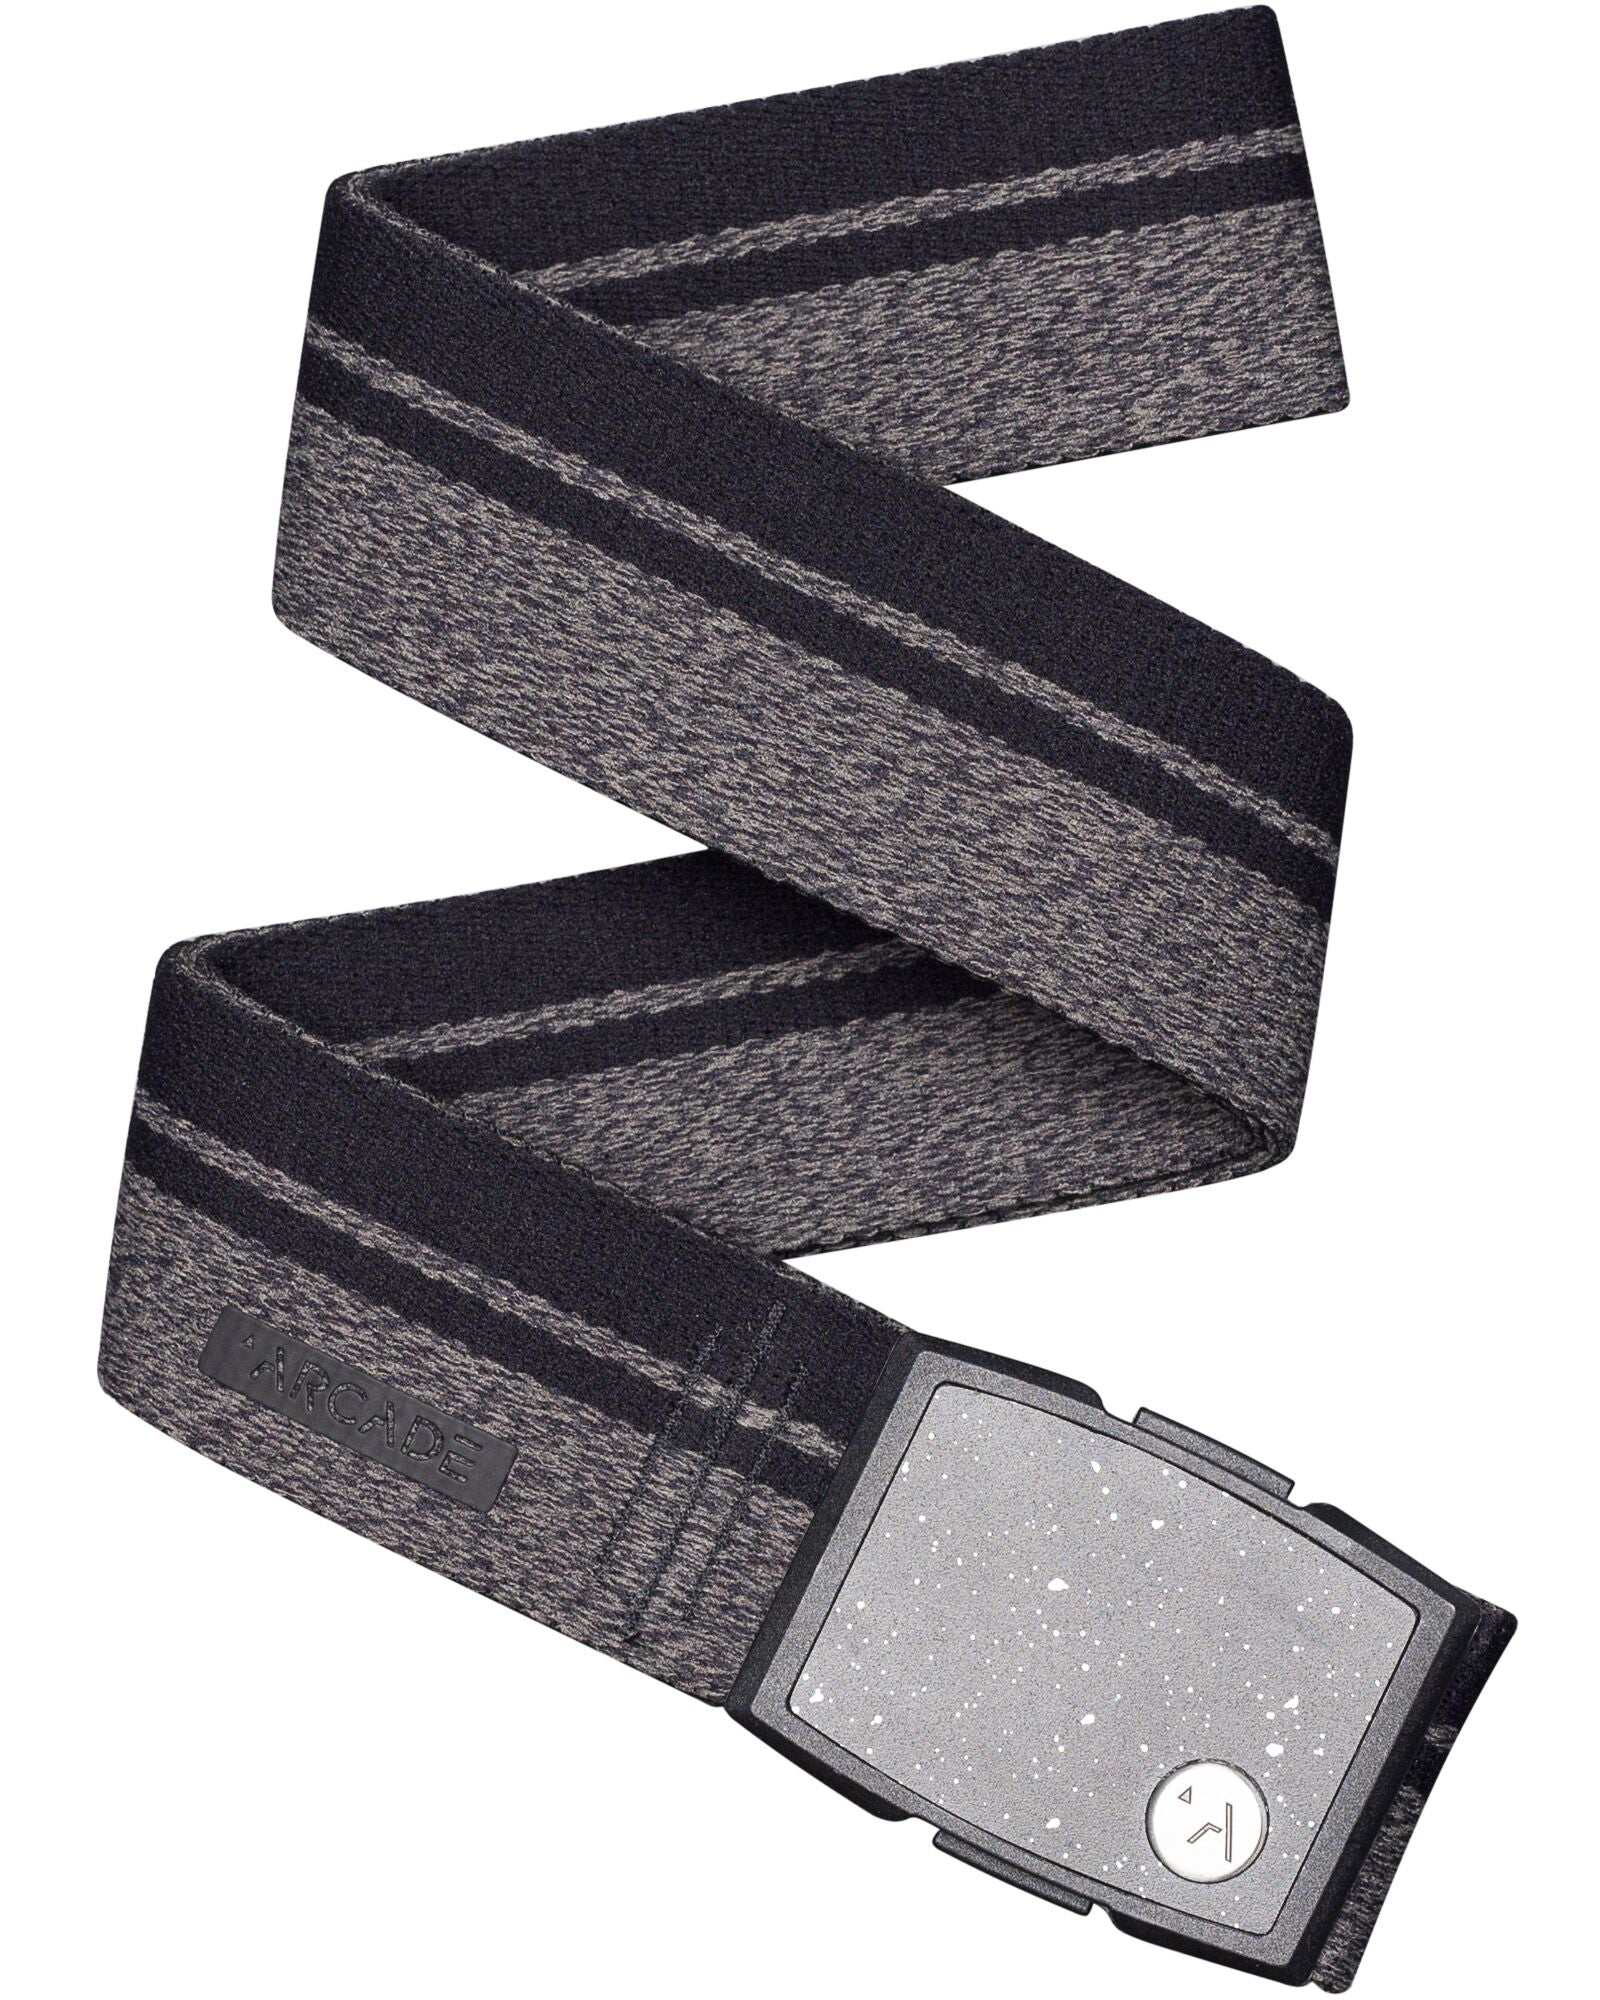 Arcade Belts Vision Heather & Black Speckle